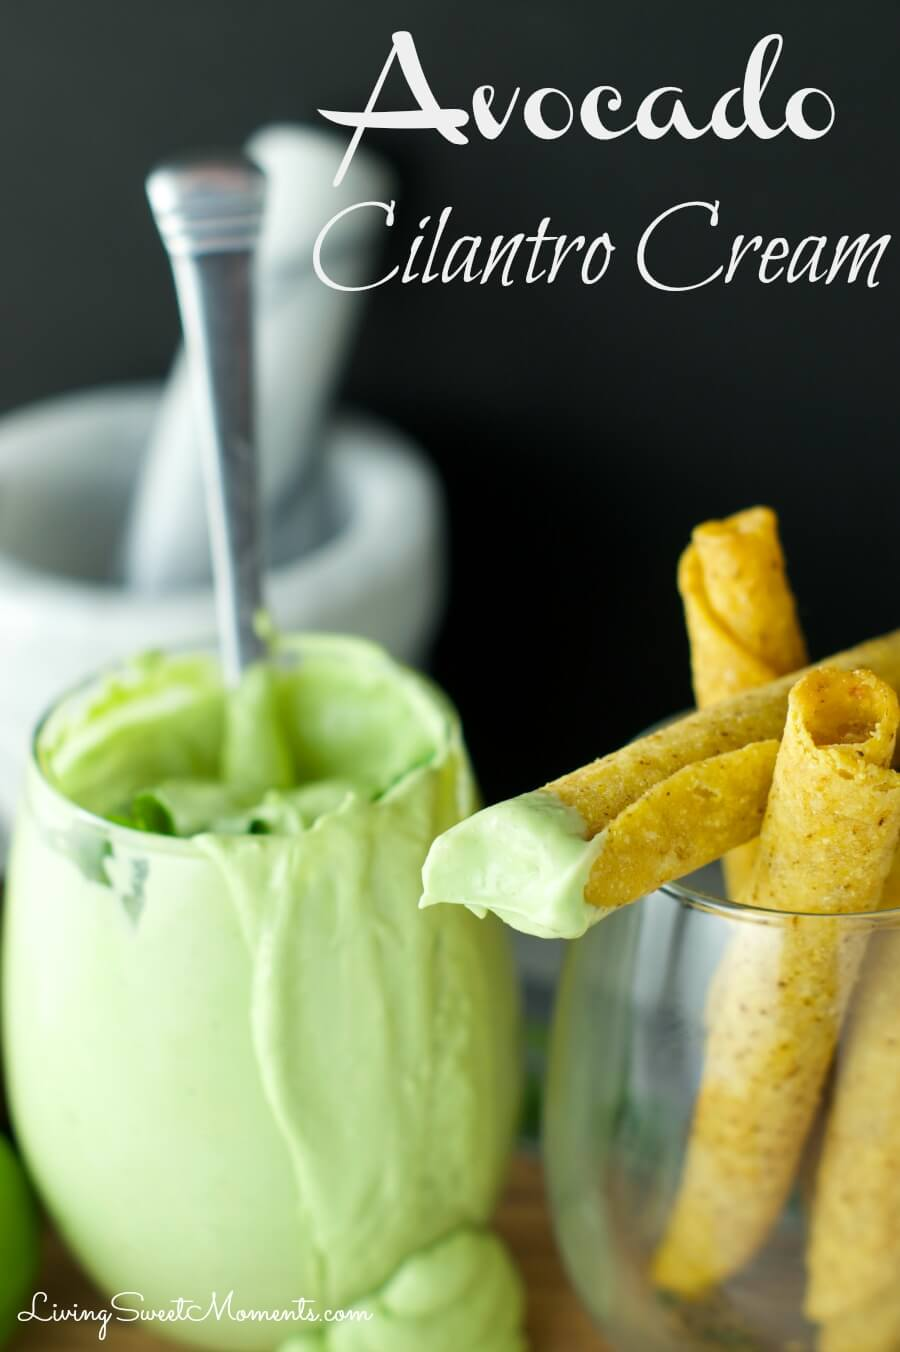 Avocado Cilantro Cream - Easy to make, Tangy dipping sauce for tacos and other Mexican goodies. Avocado, Cilantro, Lime and sour cream are blender together.